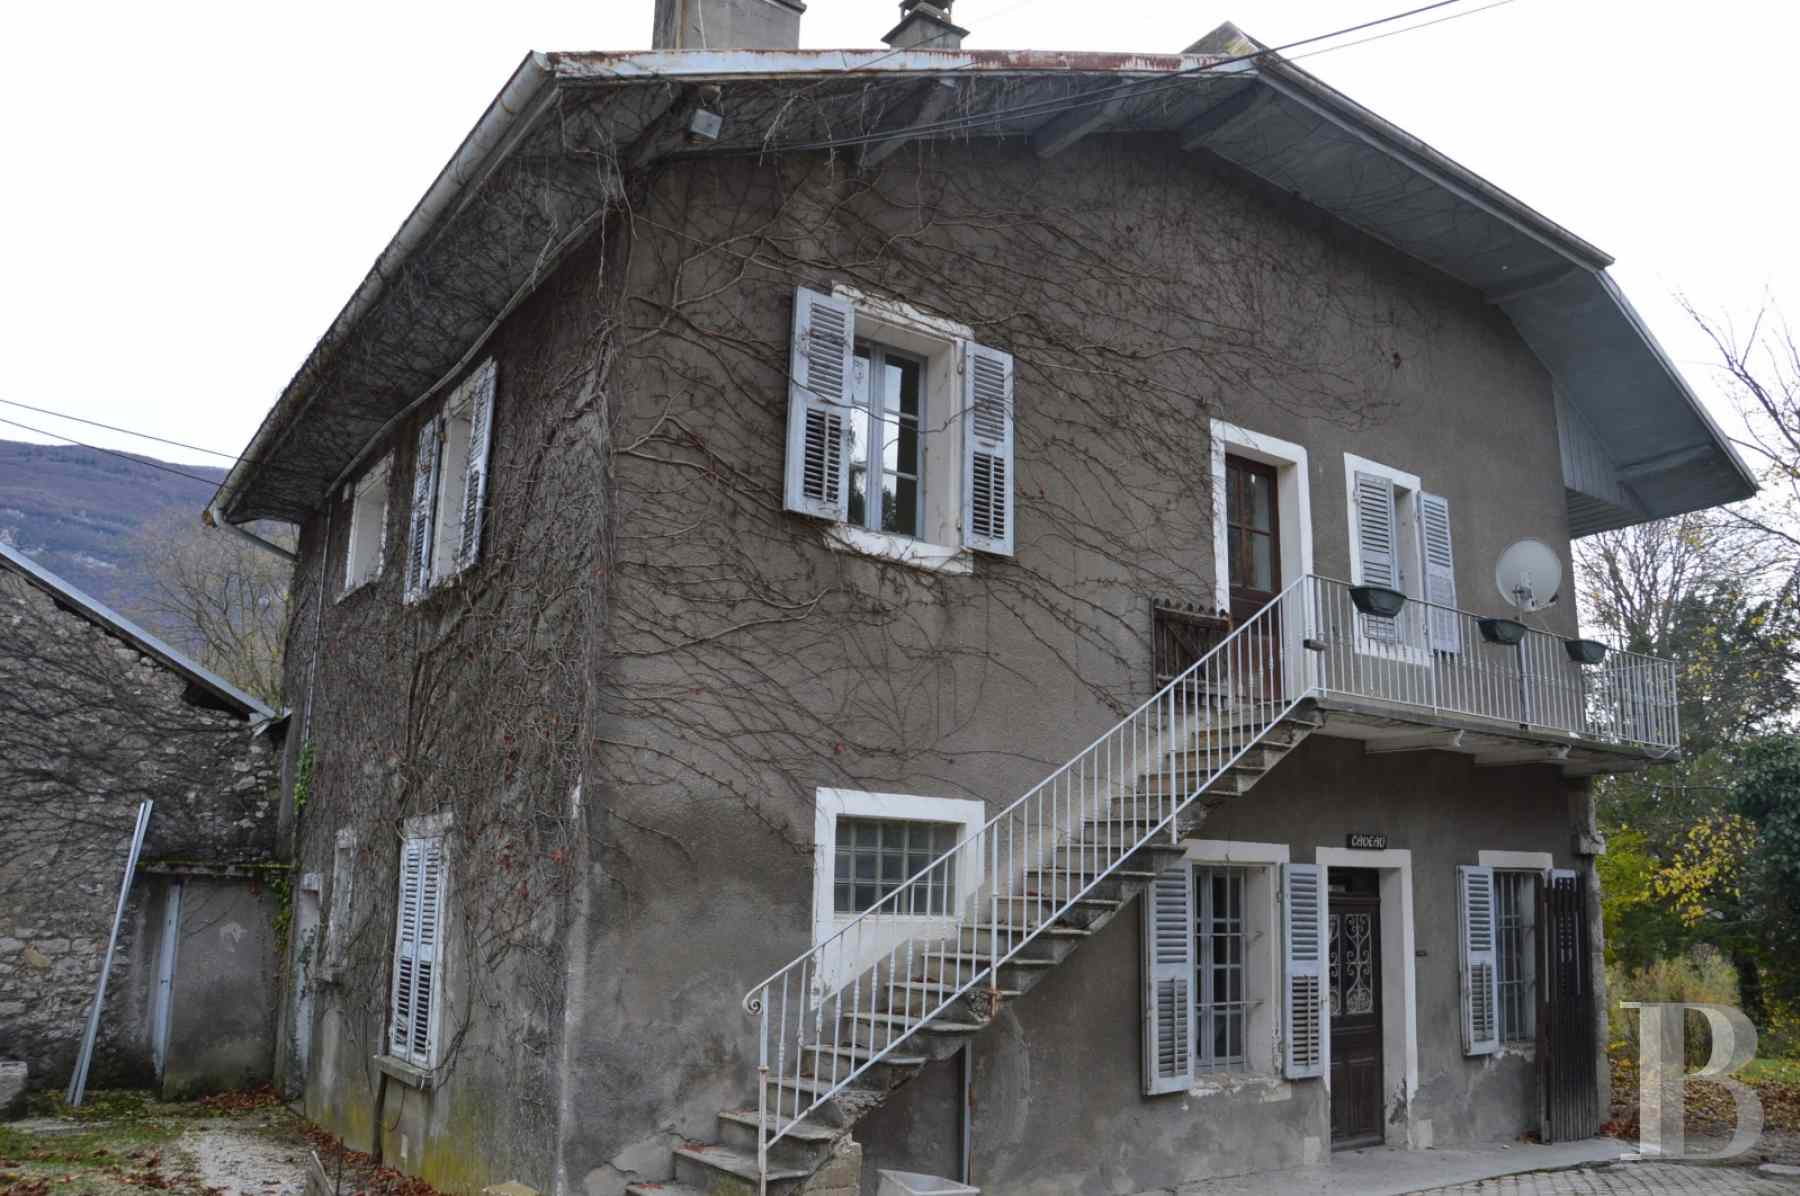 chateaux for sale France rhones alps chambery 18th - 13 zoom